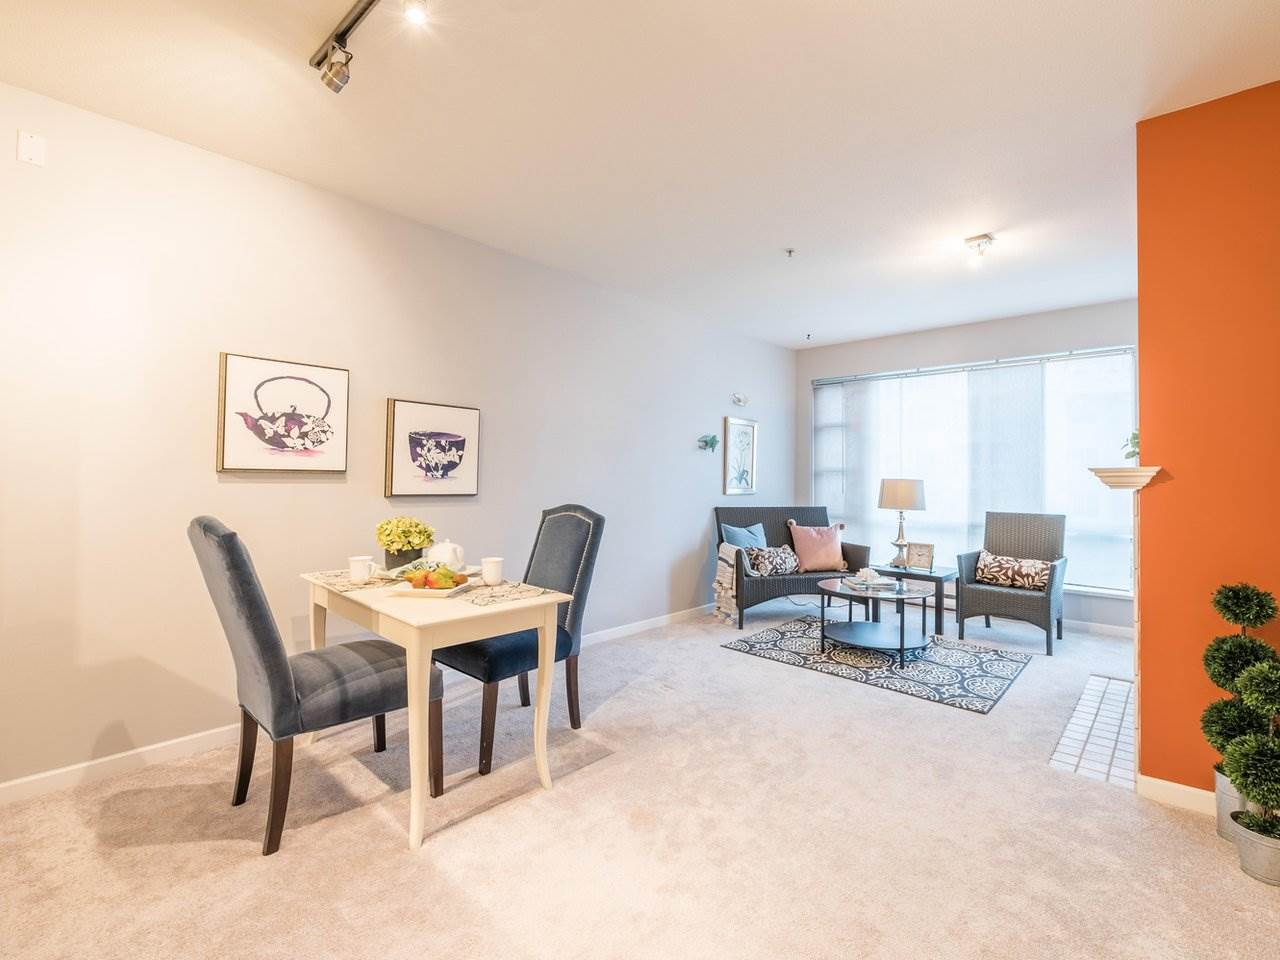 412 3629 DEERCREST DRIVE - Roche Point Apartment/Condo for sale, 1 Bedroom (R2525424) - #22